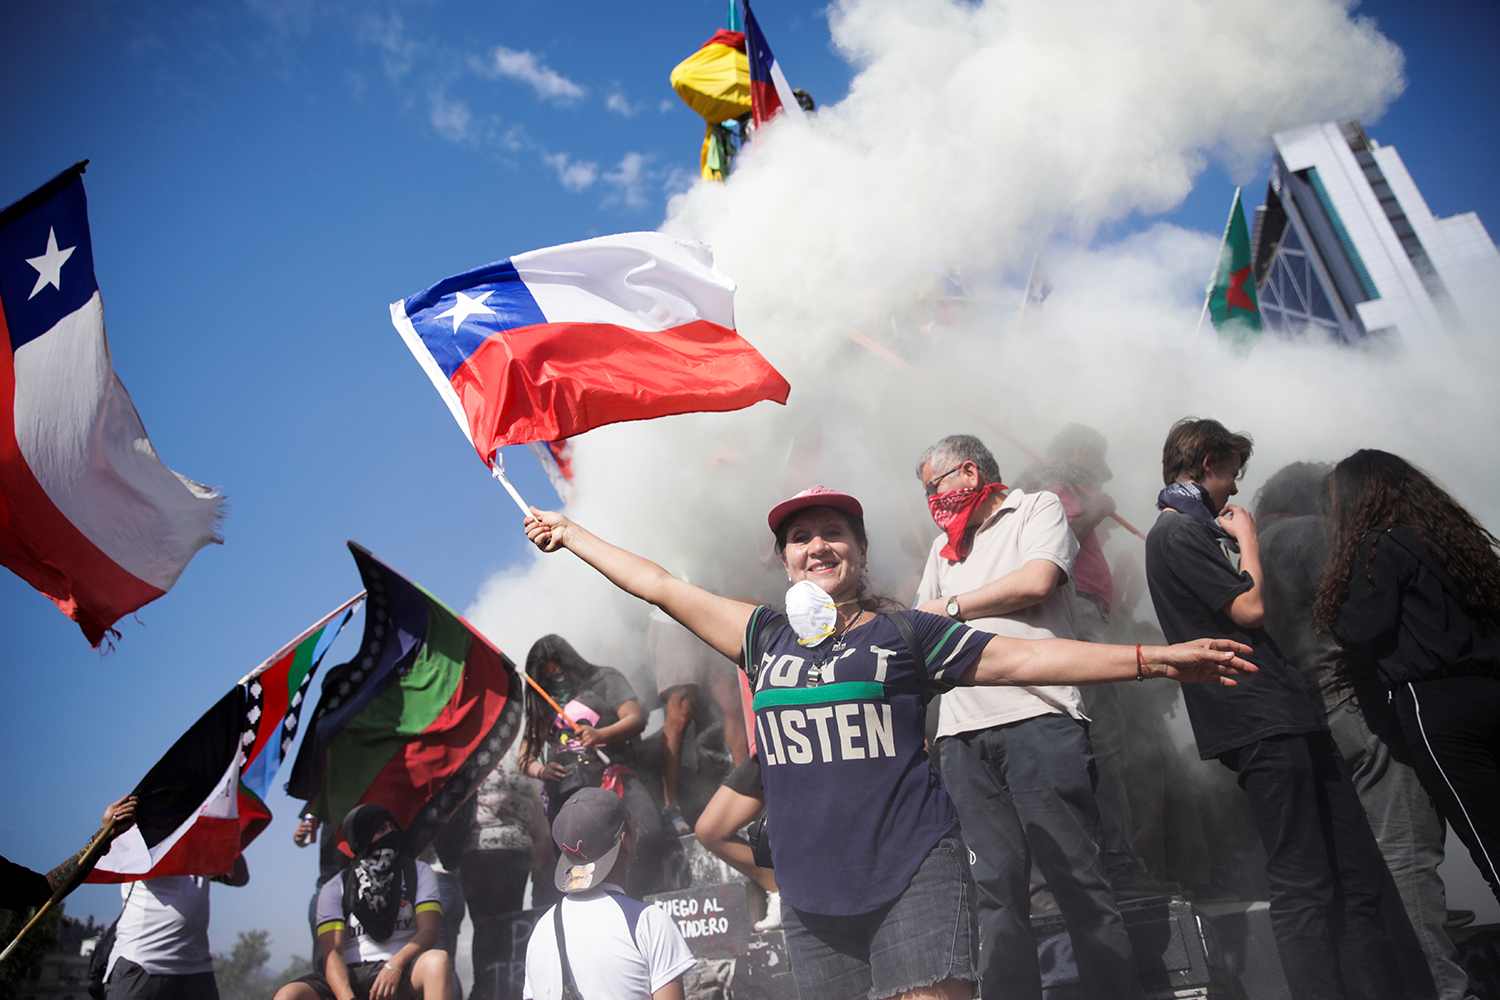 What's behind Chile's protests - Atlantic Council